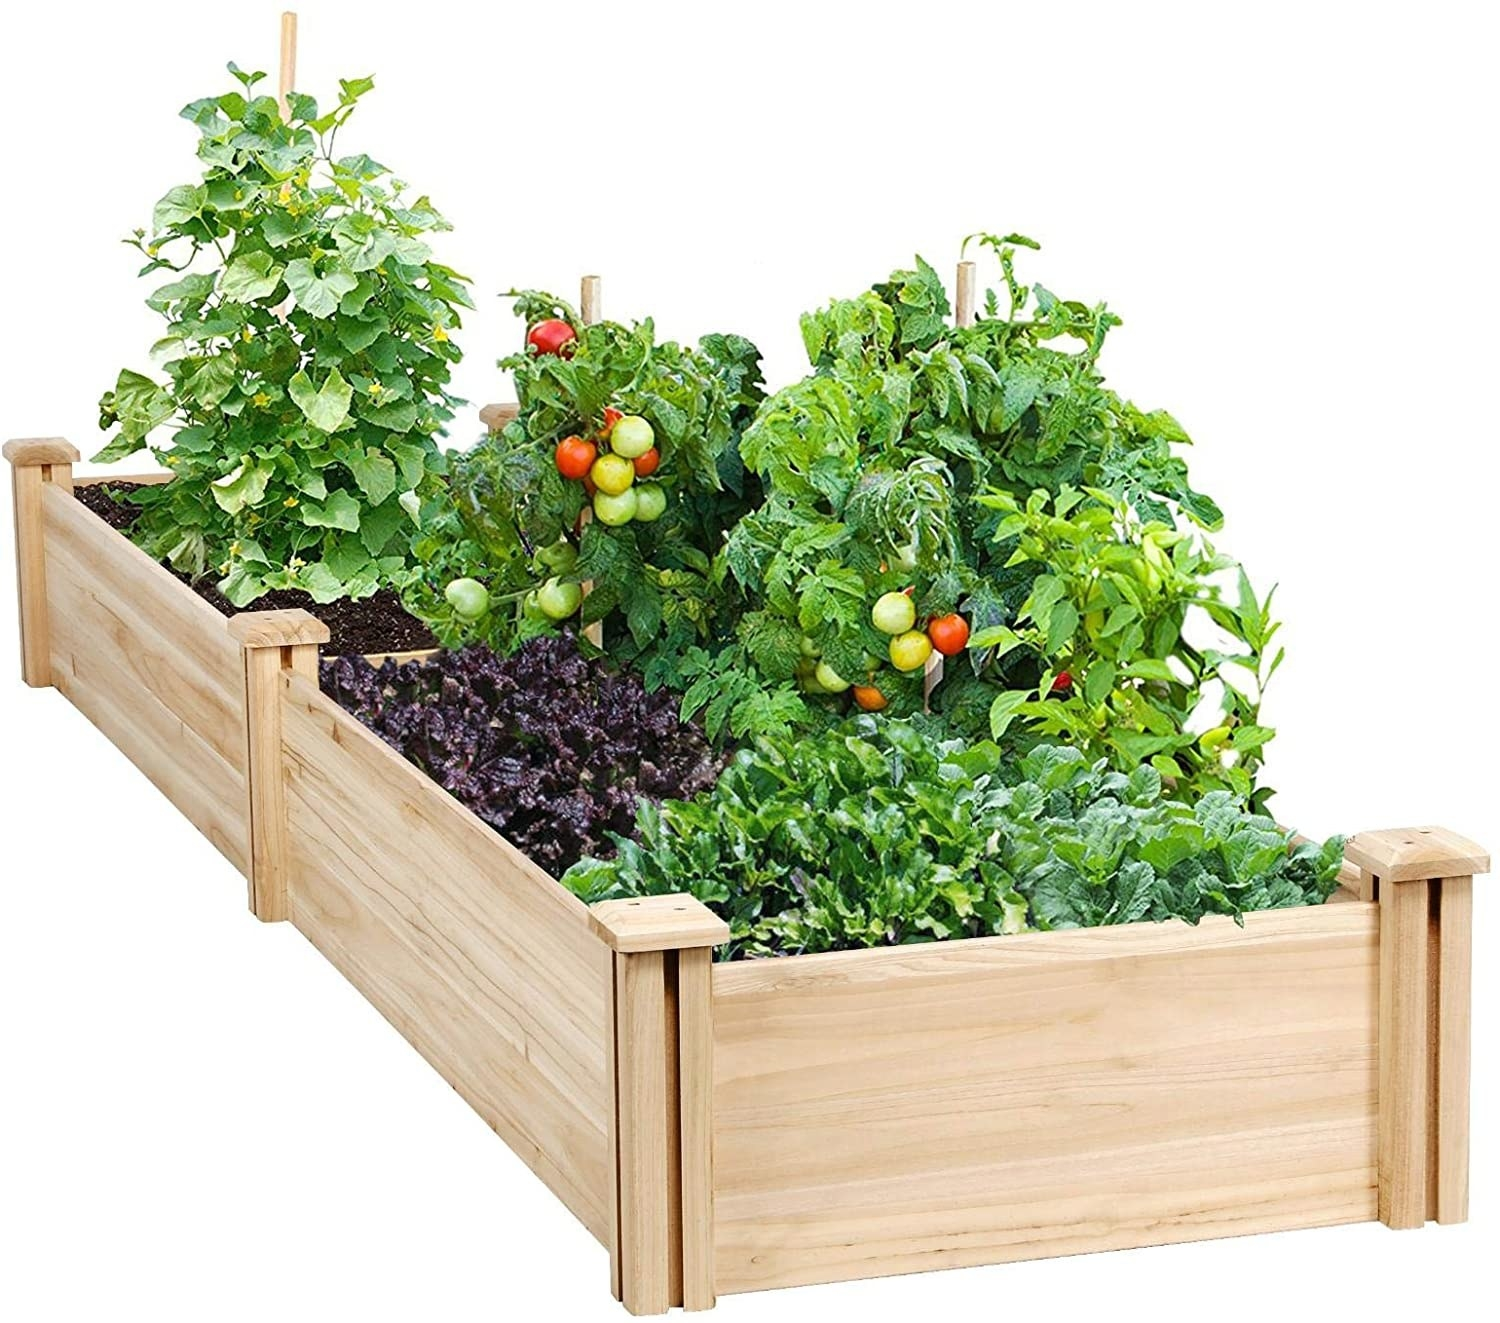 A raised wooden garden bed with tomatoes and fresh herbs.